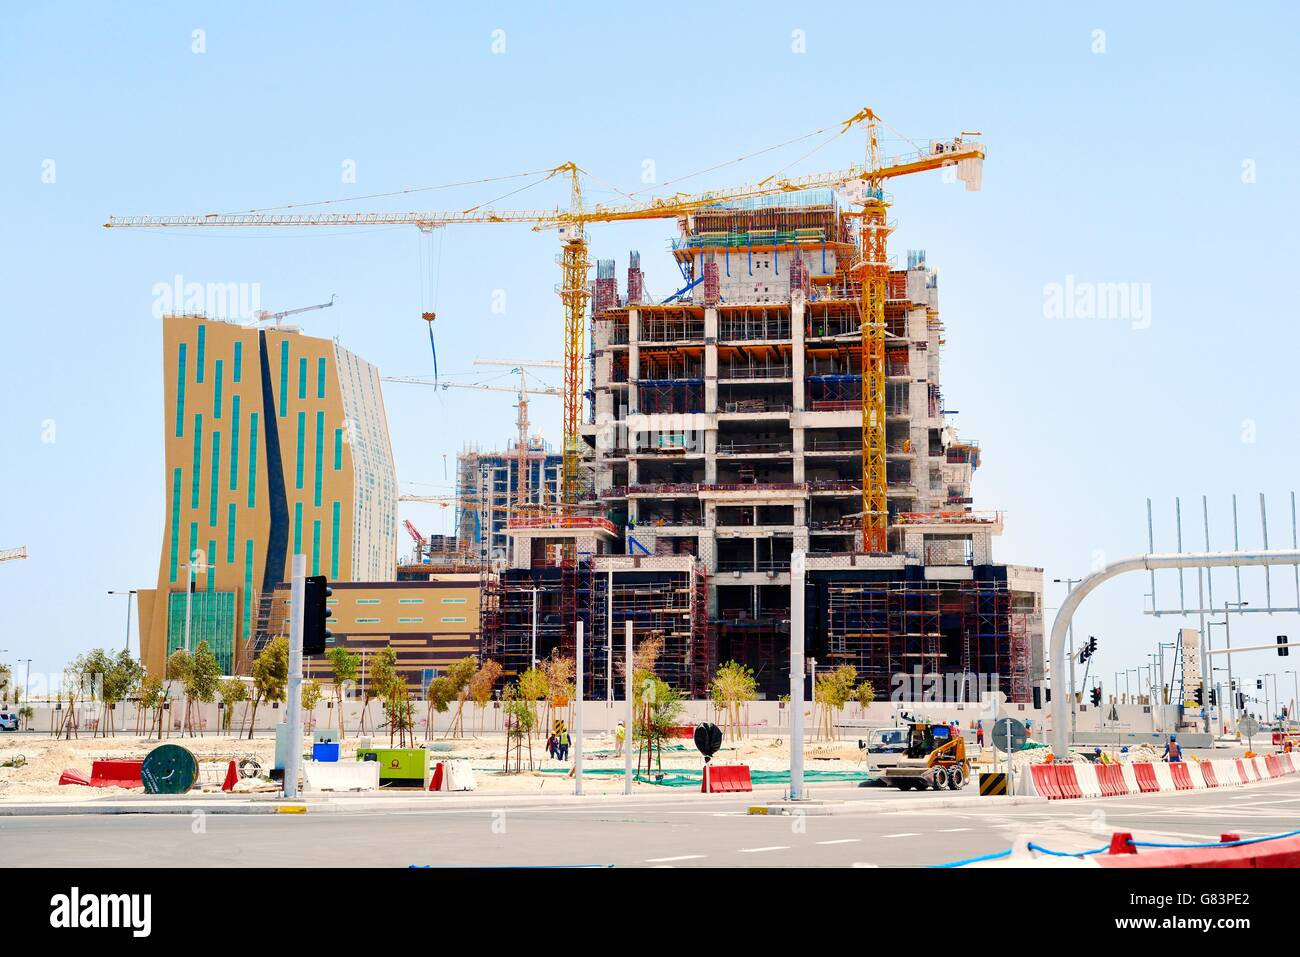 Al Bandary Engineering's Commercial Tower under construction. Marina District of rapidly developing new city - Stock Image